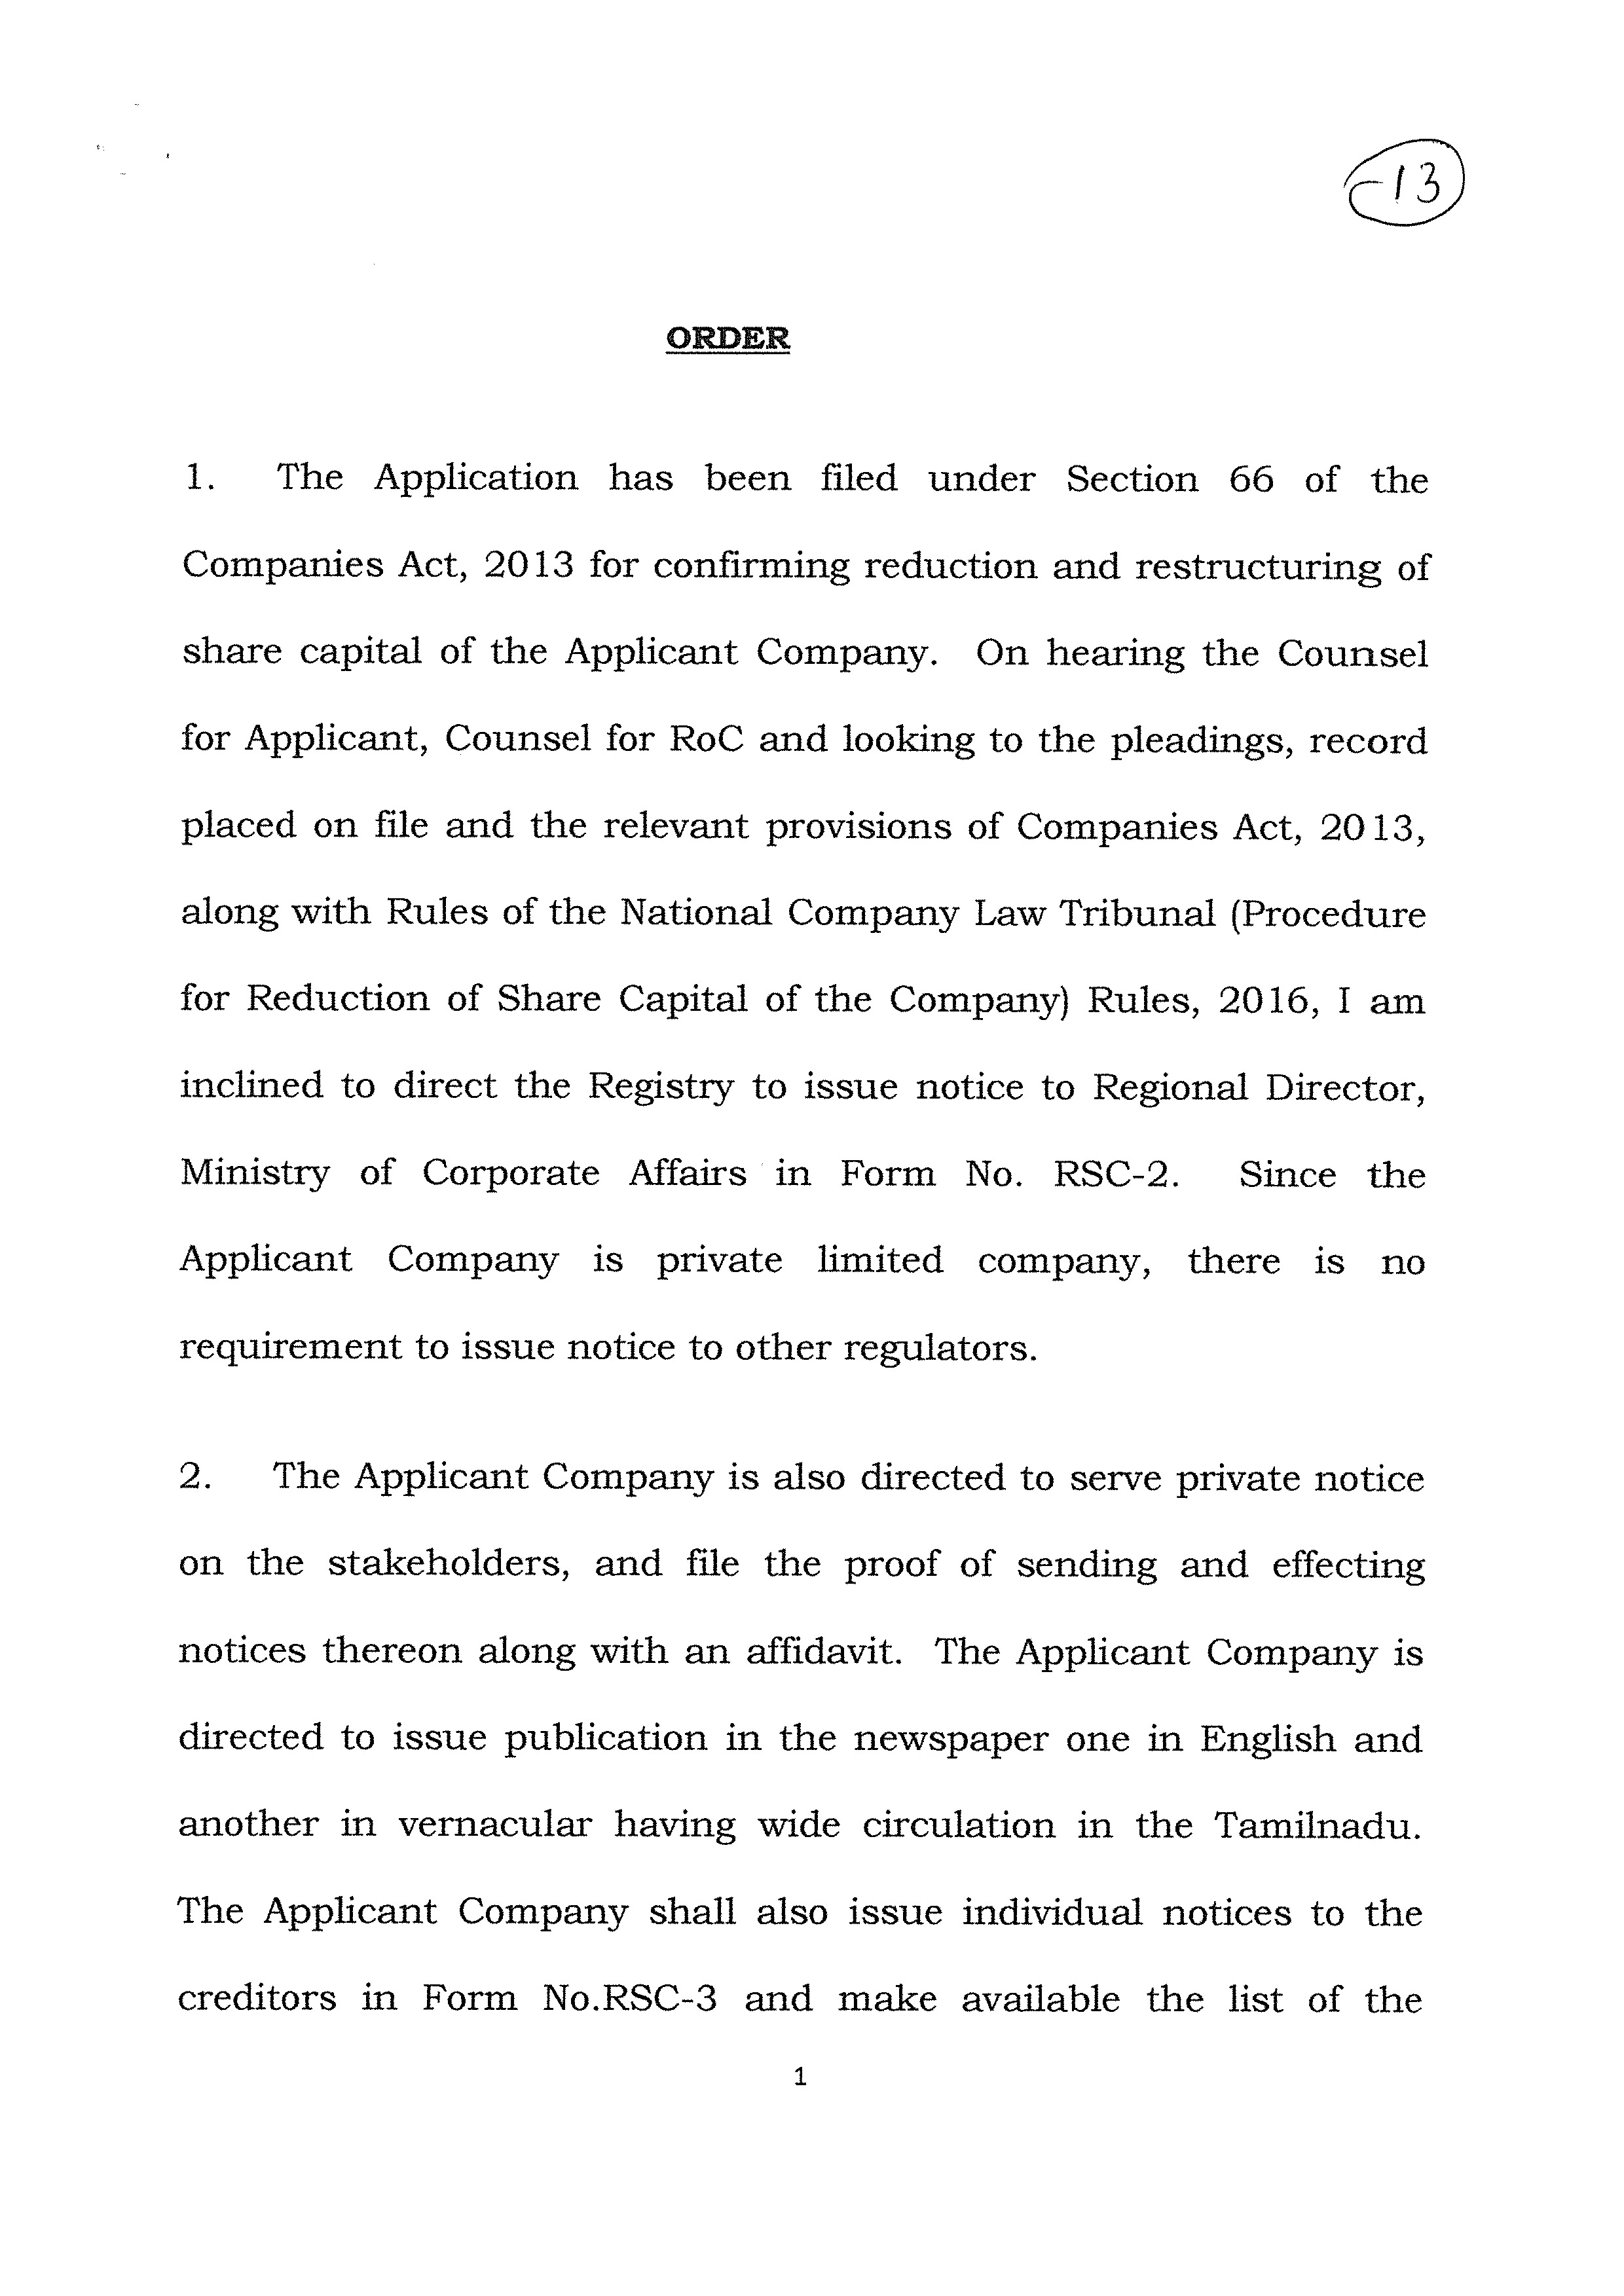 CP 1498 - NCLT Directions - 29012019 _Page_2